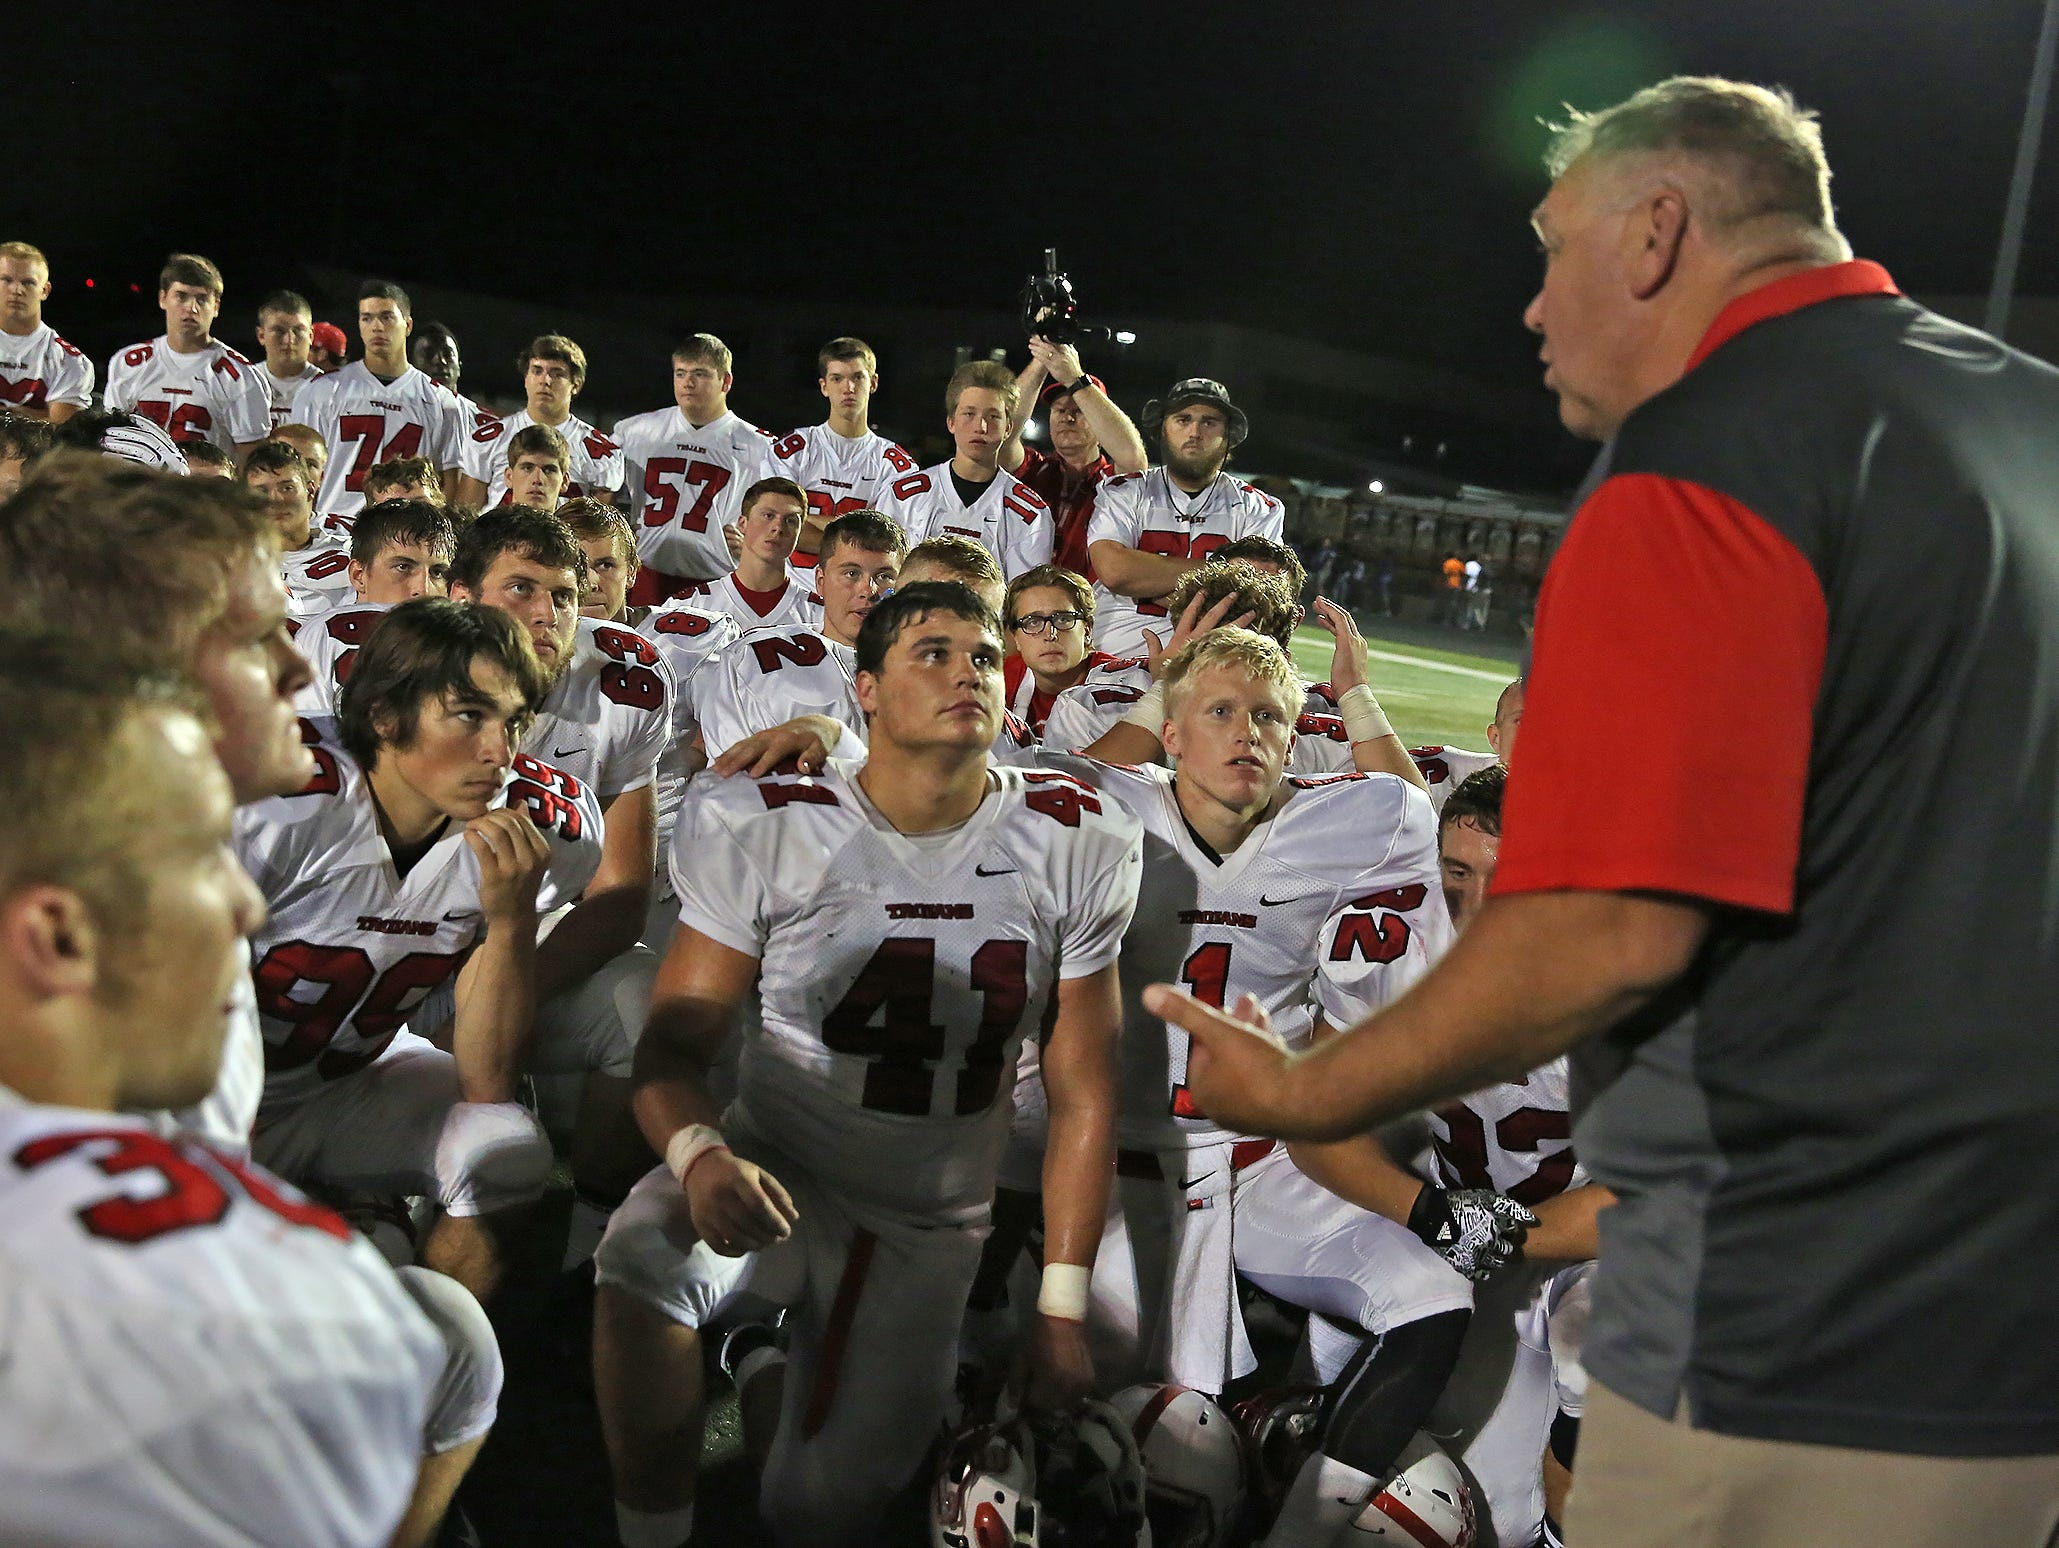 Center Grove head coach Eric Moore talks to his team after their victory football game at Lawrence Central, Friday, September 25, 2015. Center Grove won 44-26.